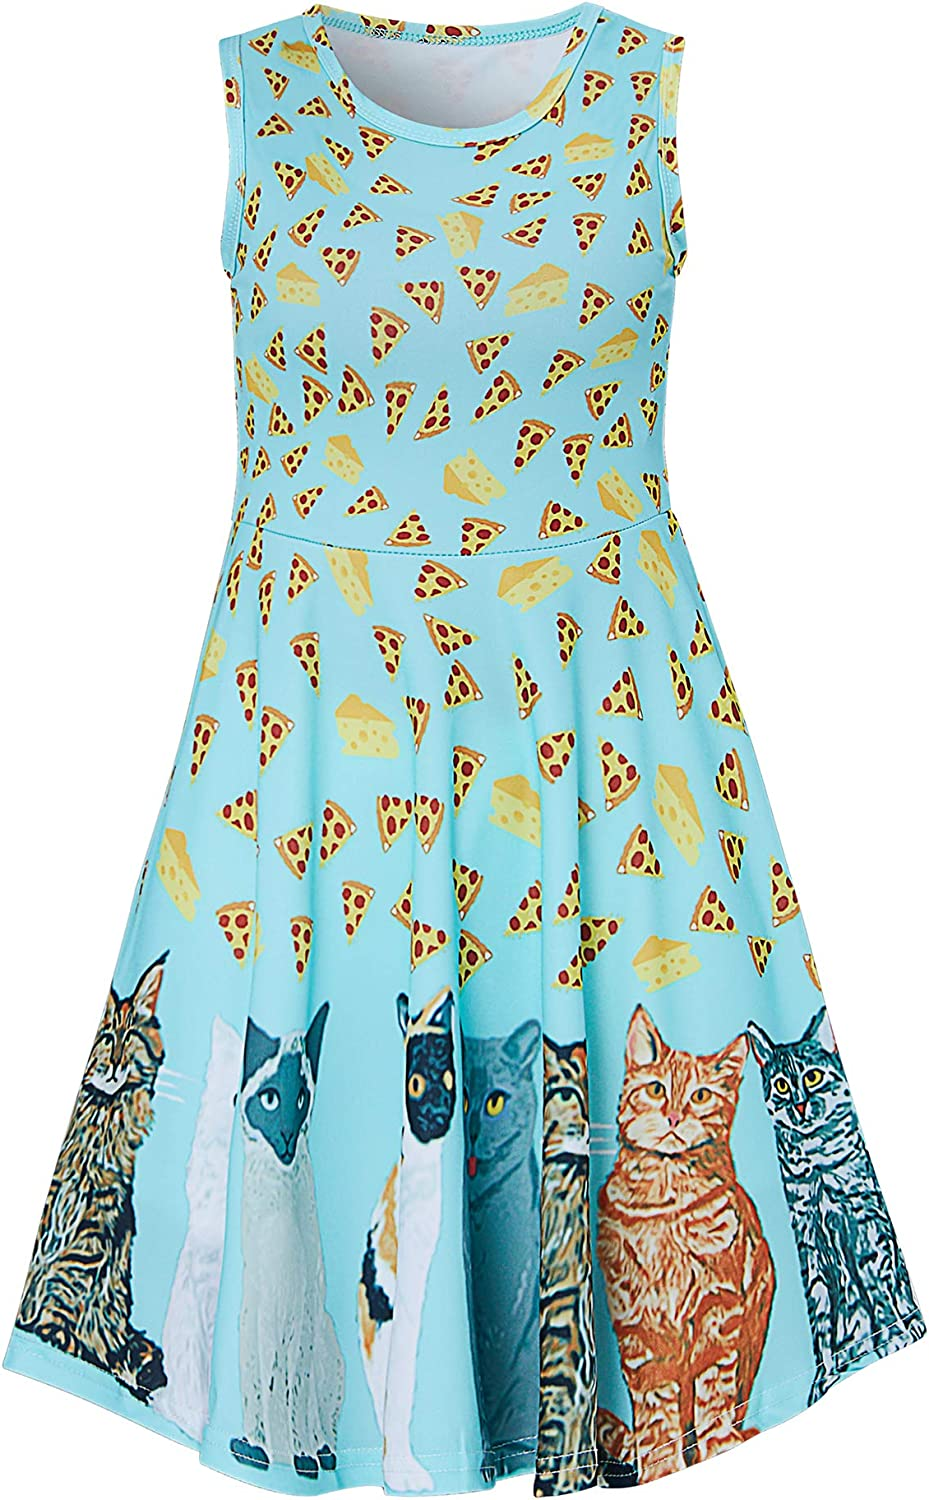 uideazone Girls Sleeveless Dress Round Neck Floral Printed Casual Party Sundress 4-12 Years